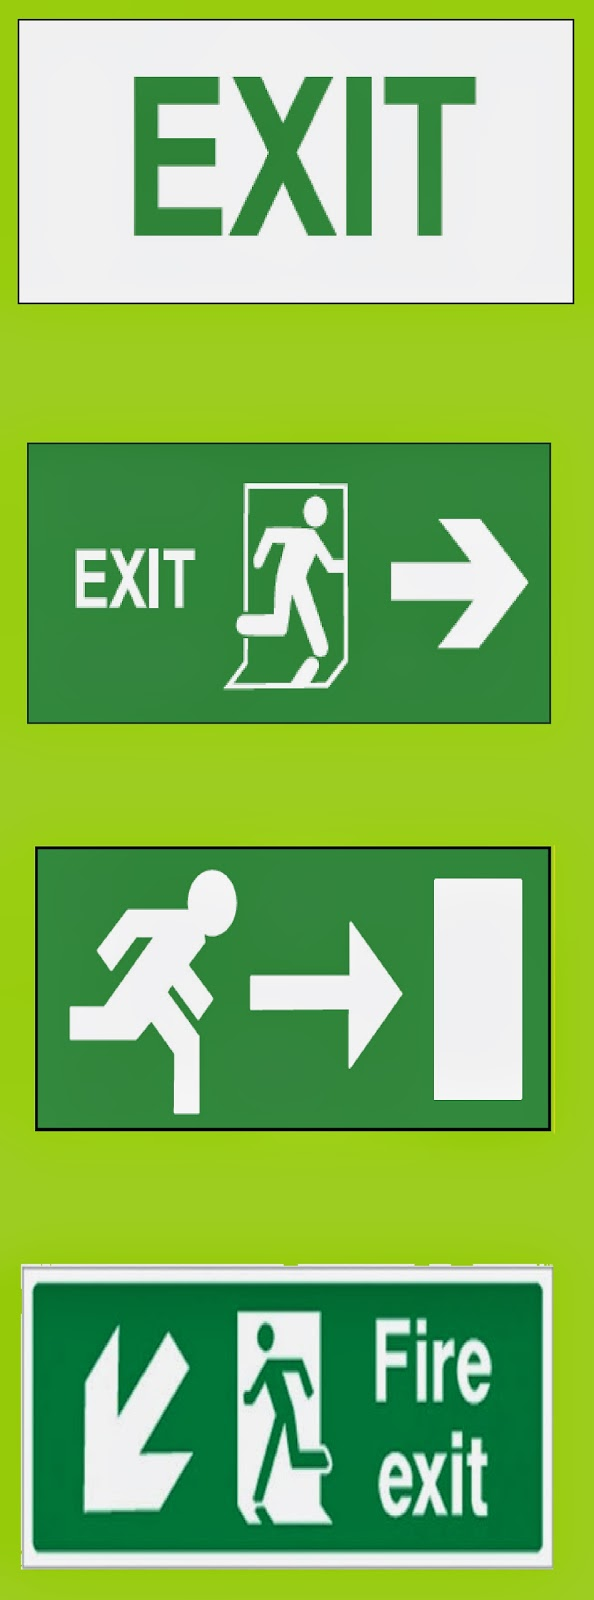 Format of emergency exit signs emergency exit or fire exit signs buycottarizona Images